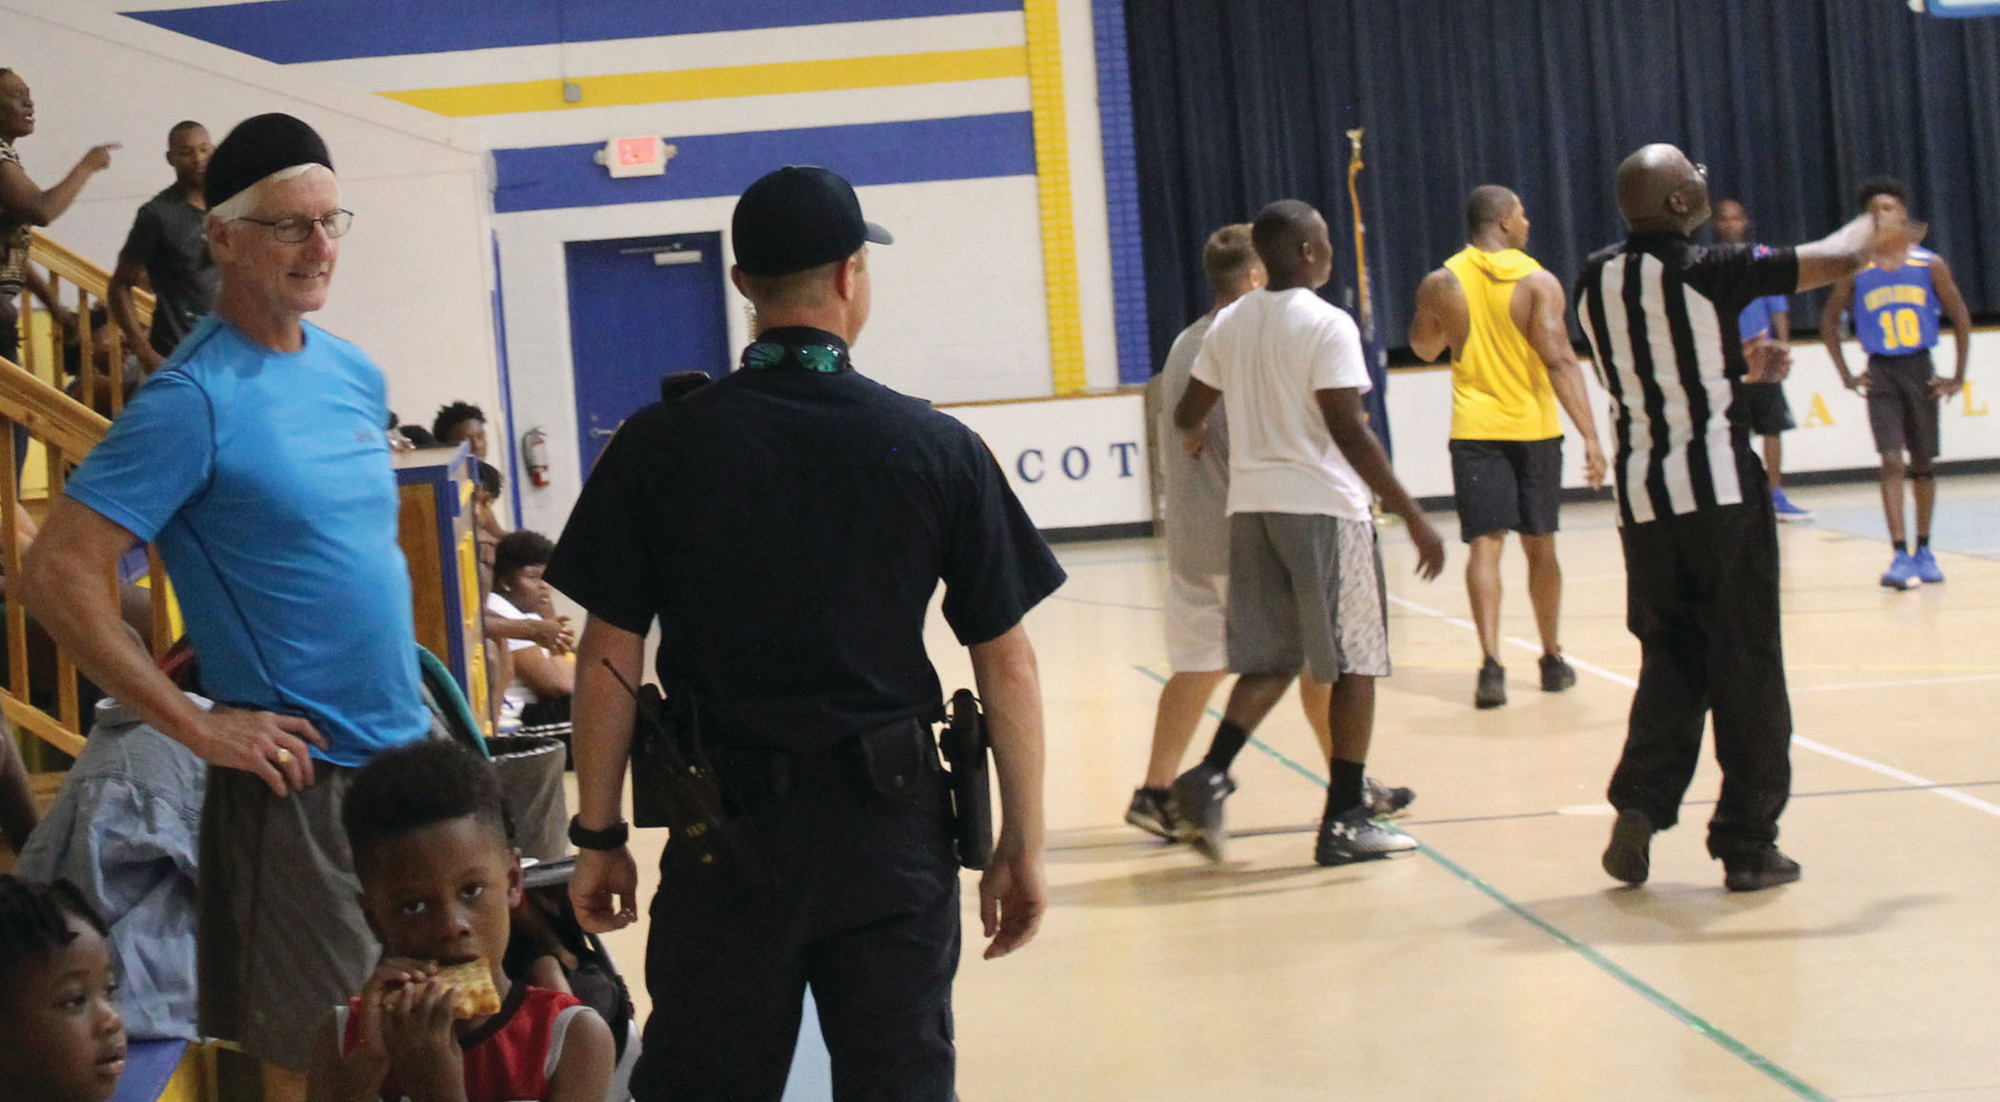 Clarendon County Sheriff's Office Chief Deputy Gene Morris, left, chats with Lt. Matthew Stone before he takes the court in a basketball game between law enforcement officers and athletes from Scott's Branch High School on June 15 in Summerton as party of the first Ready. Set. Engage! event.